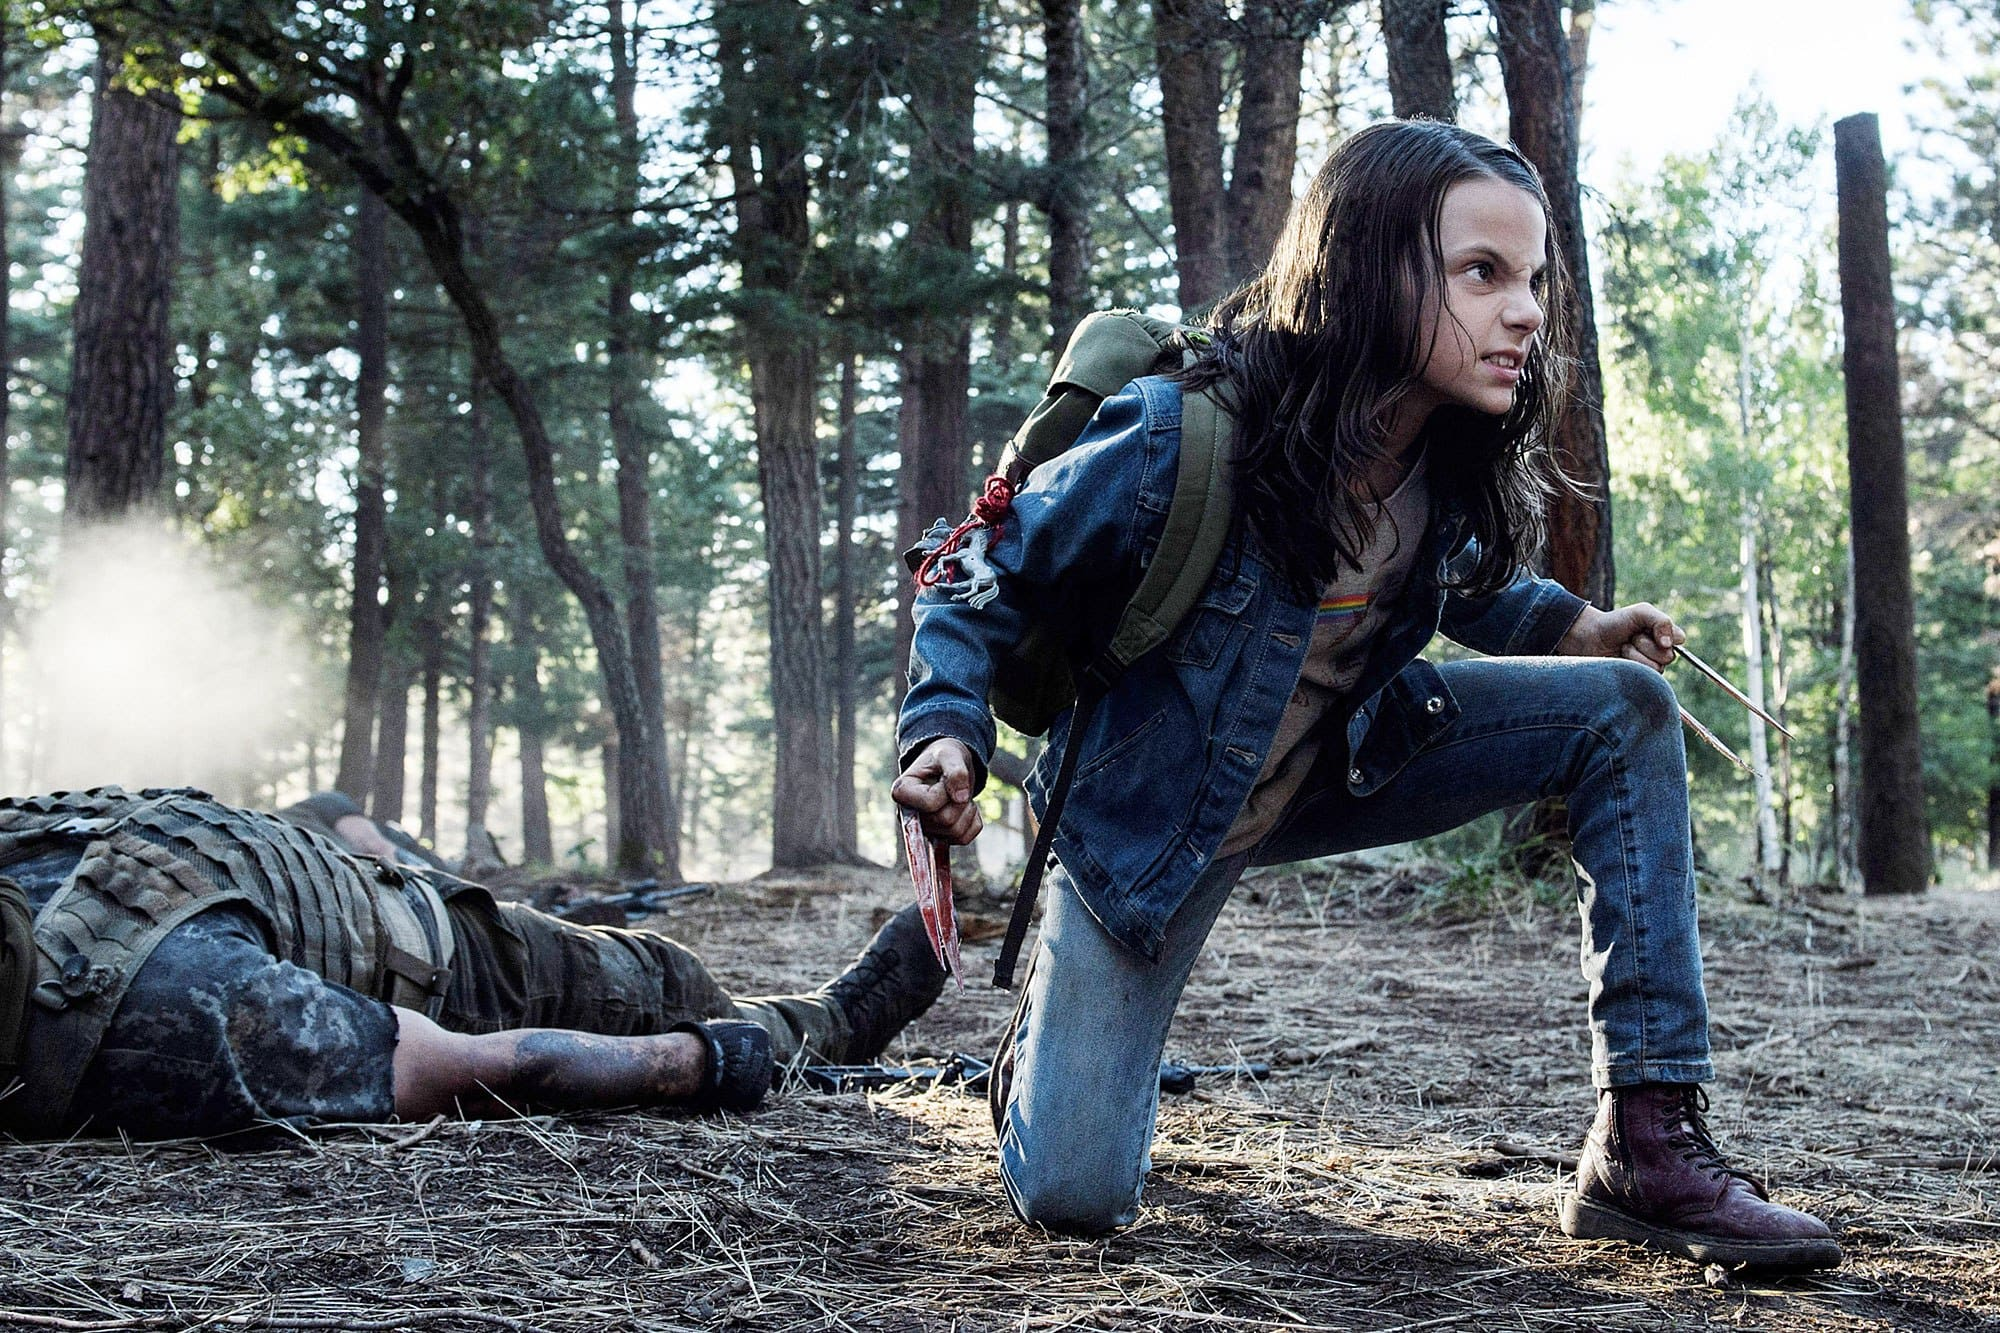 X-23 Might Get A Solo Movie But Won't Join Any Of The X-Men Movies